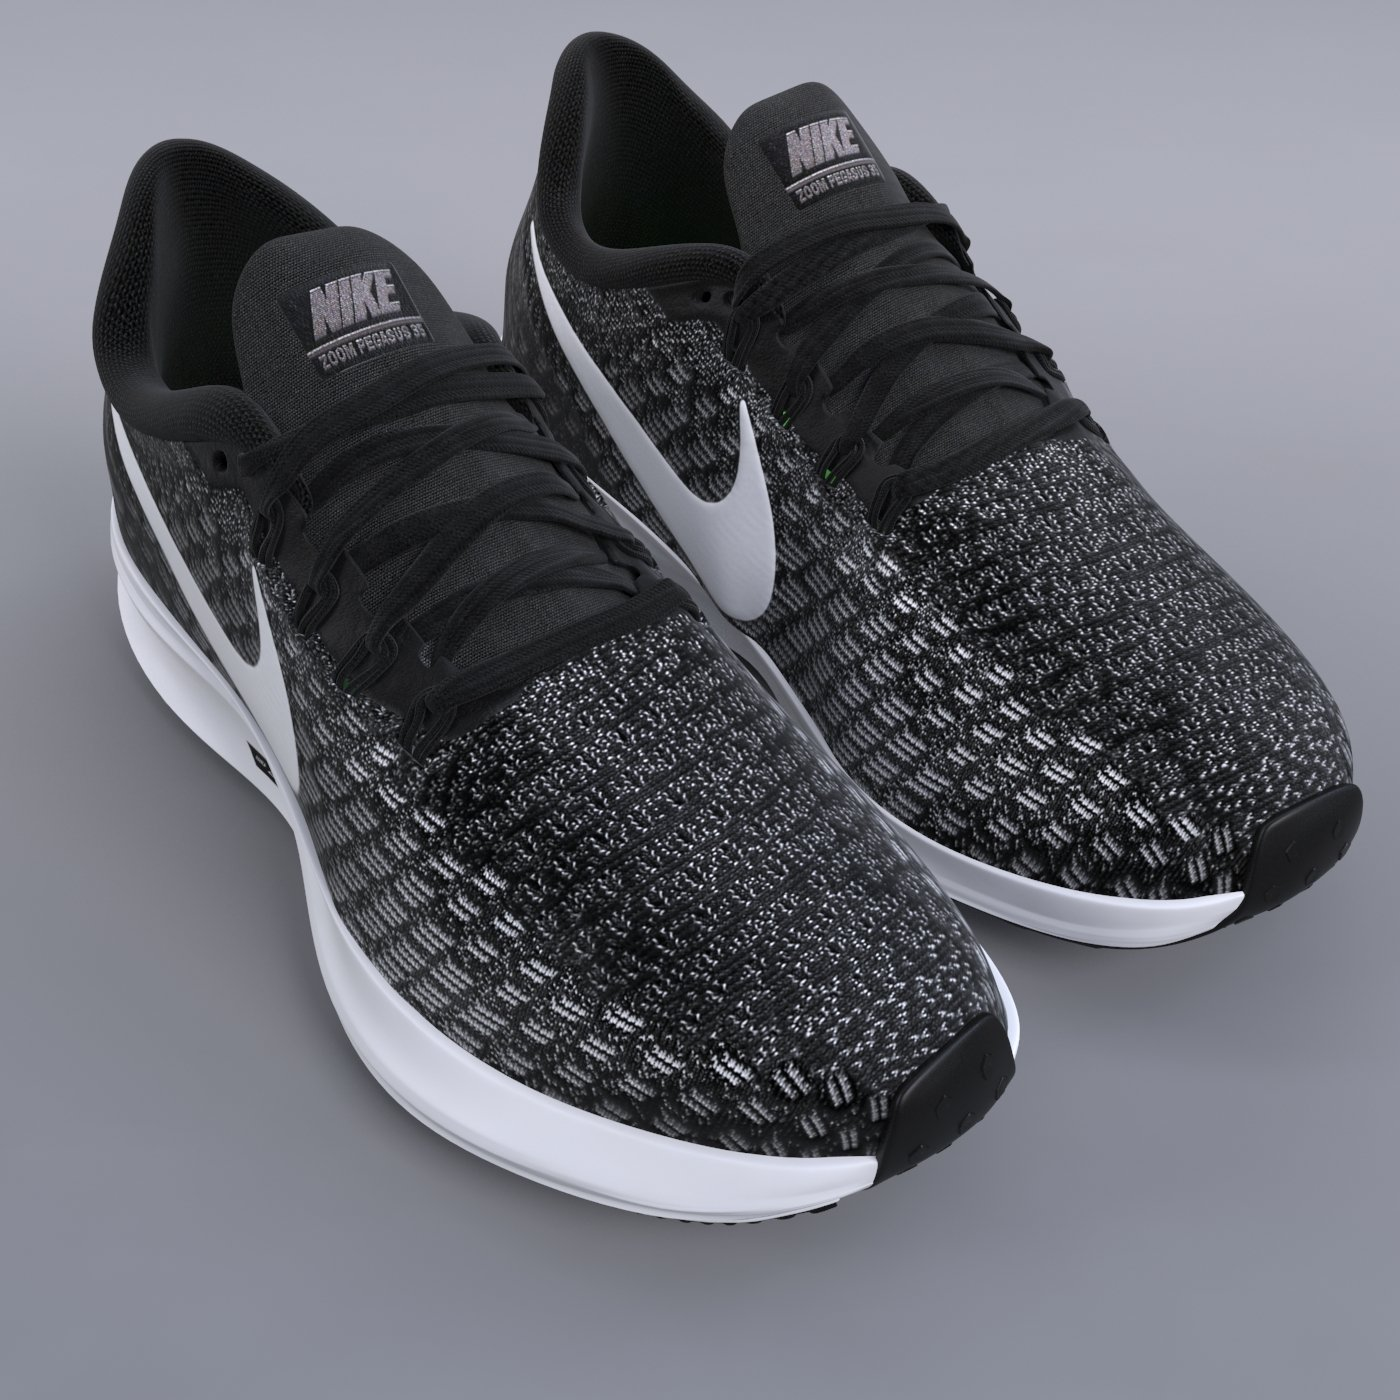 économiser 56034 5da1d Nike Air Zoom Pegasus 35 PBR 3D Model in Clothing 3DExport